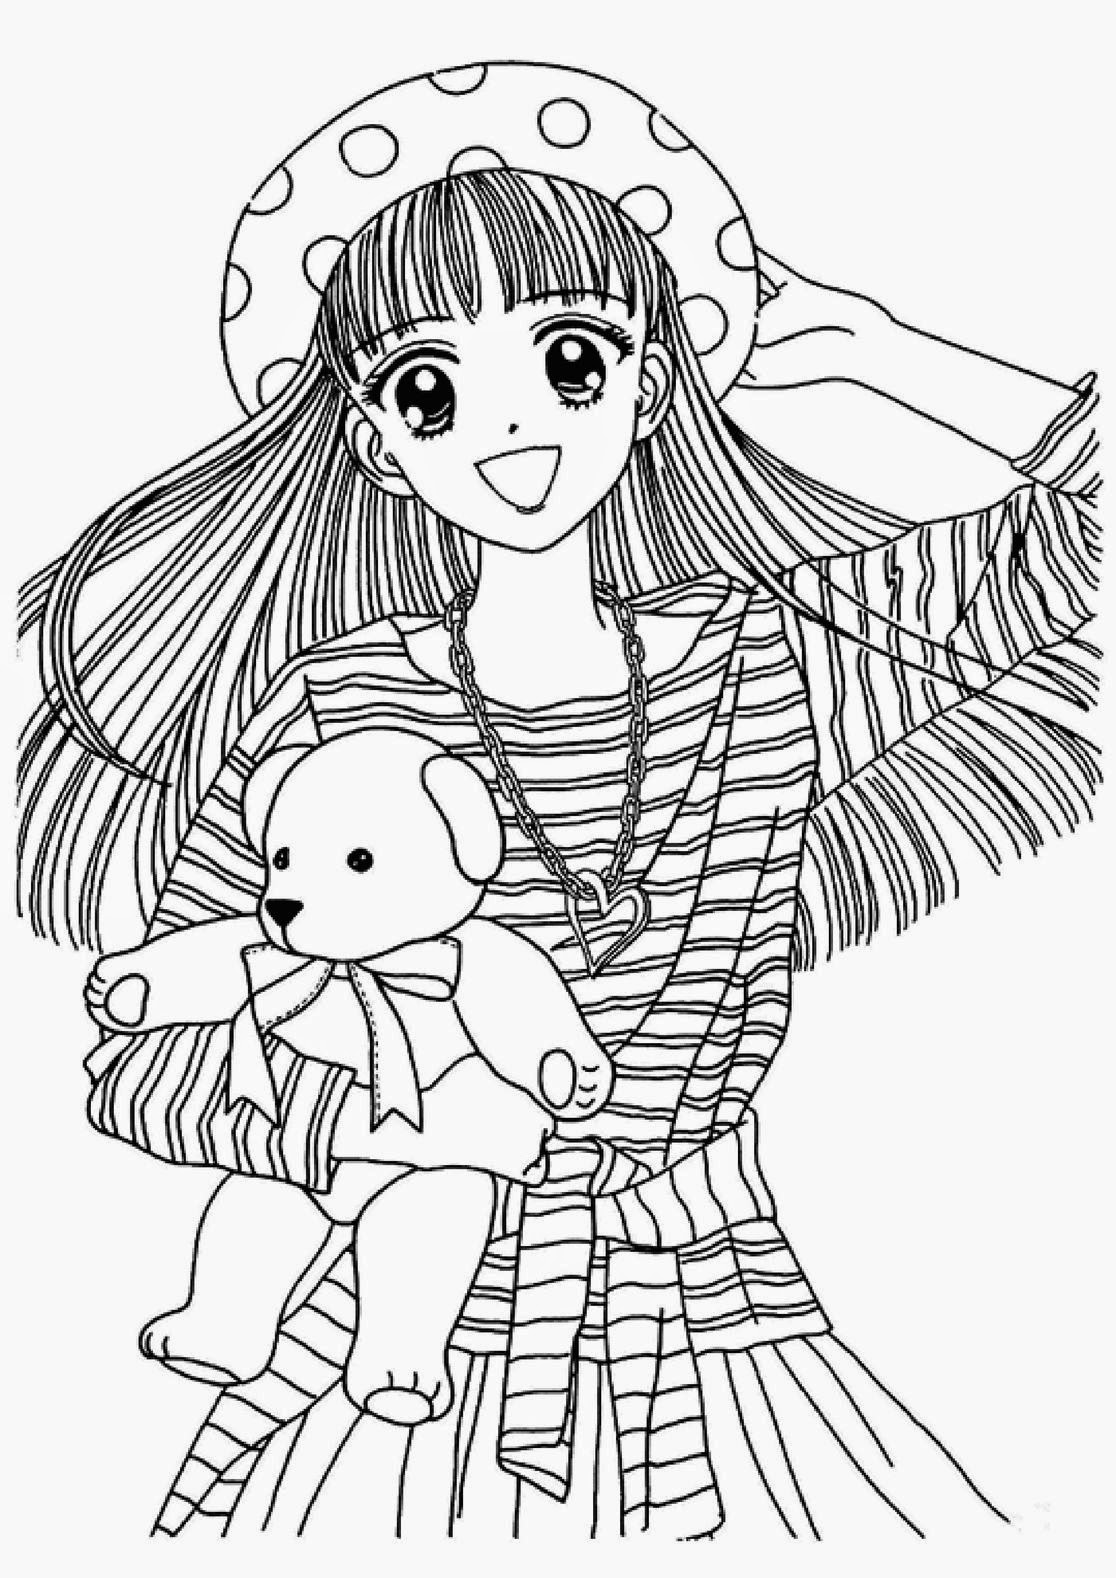 coloring sheet anime girl anime girl coloring pages timeless miraclecom coloring girl anime sheet